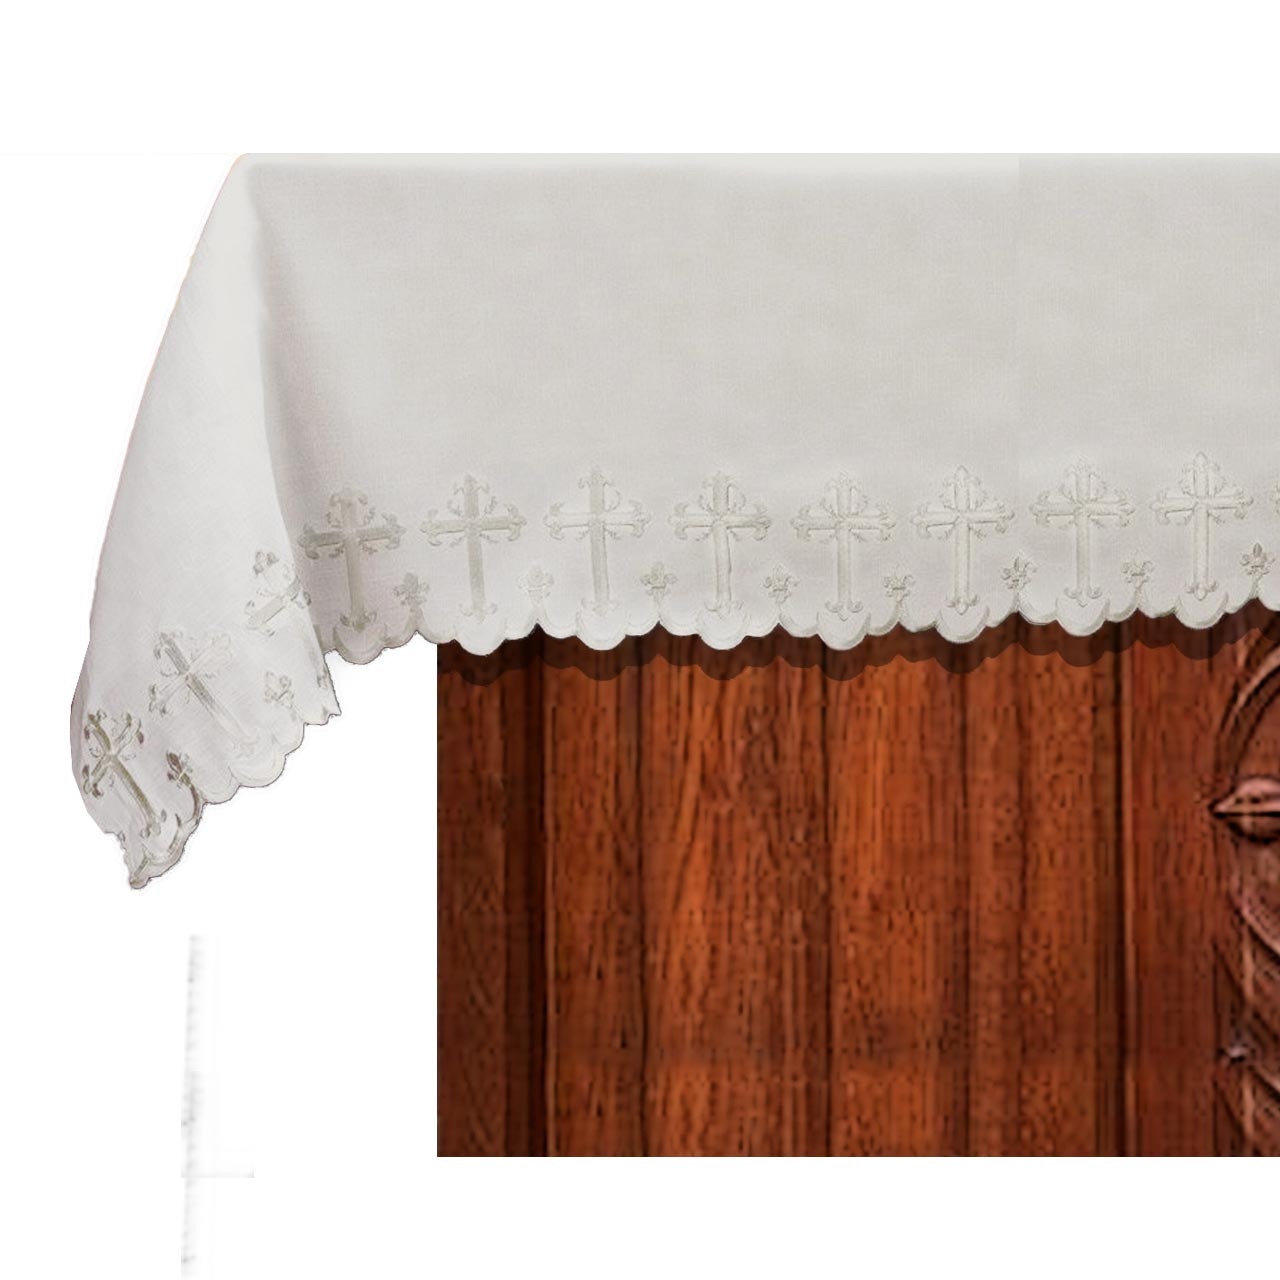 D2272 Two-Sided Scallop-Edged Altar Frontal